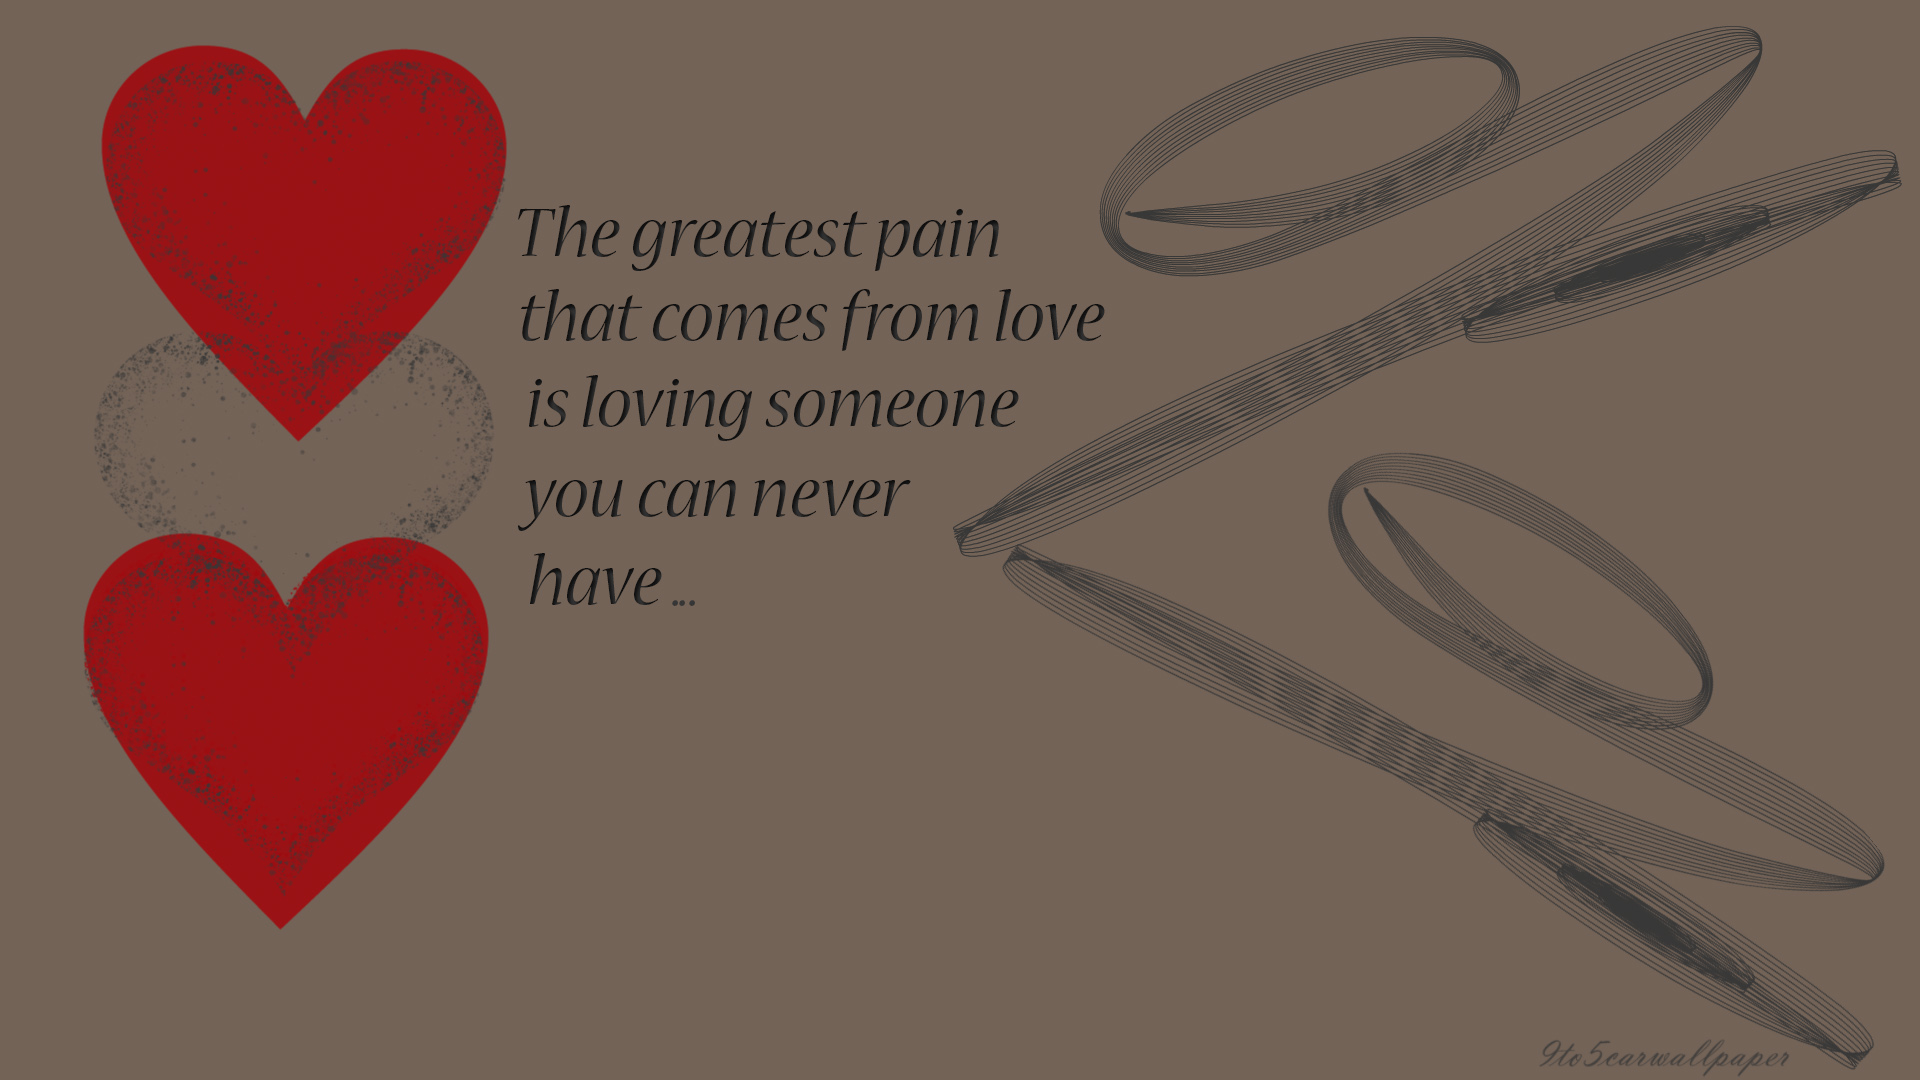 Love is pain sad love quotes 2017 my site - Love 020 wallpaper hd ...